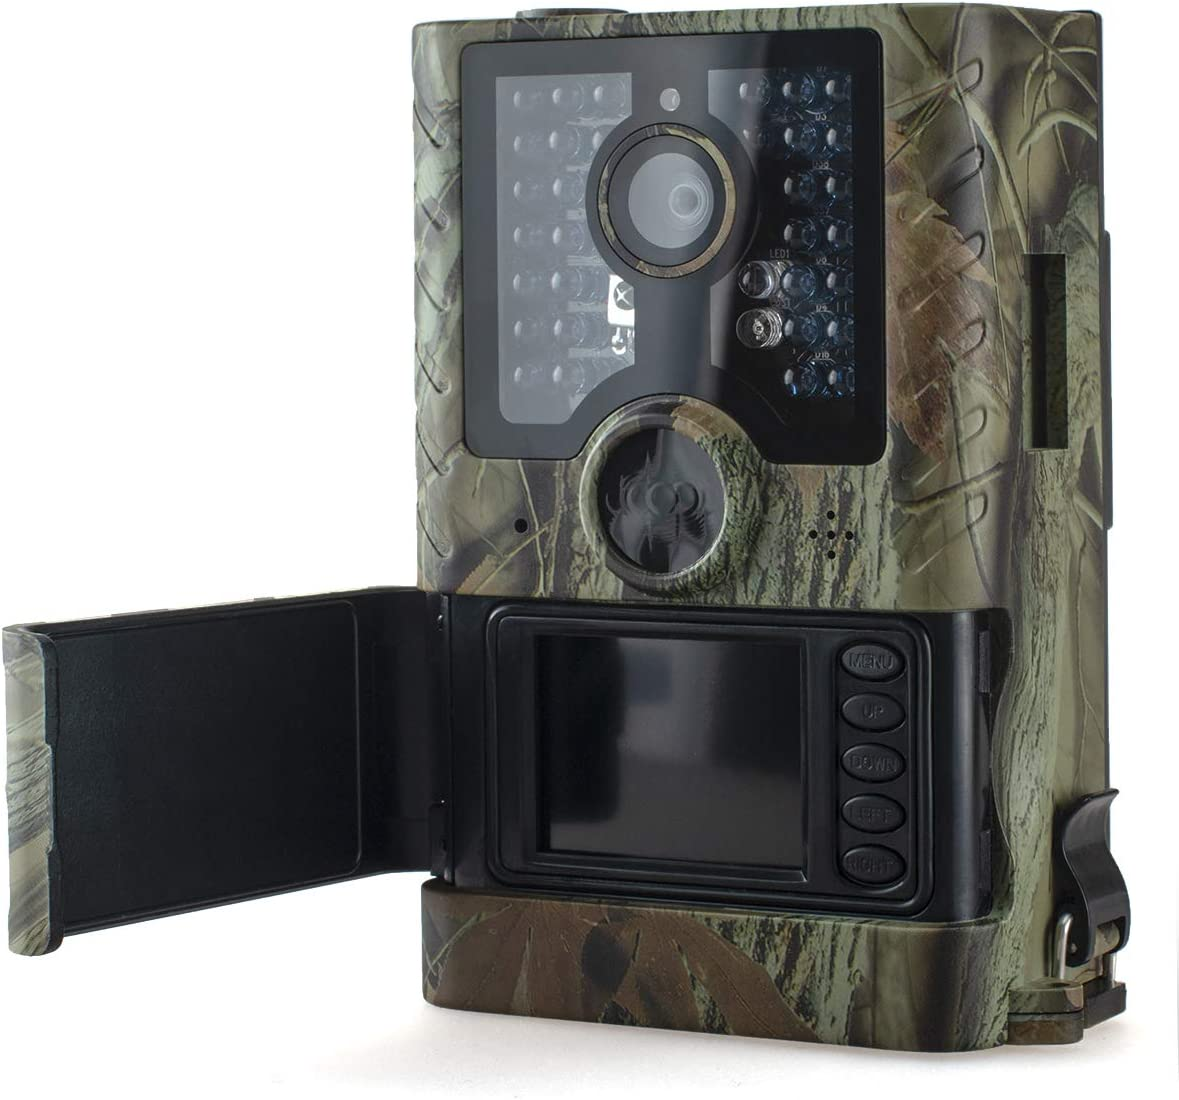 AILEMON Trail Camera 12MP 1080P Night Vision Hunting Game Camera 125° Detecting Range Motion Activated IP56 Waterproof for Outdoor Wildlife Monitoring